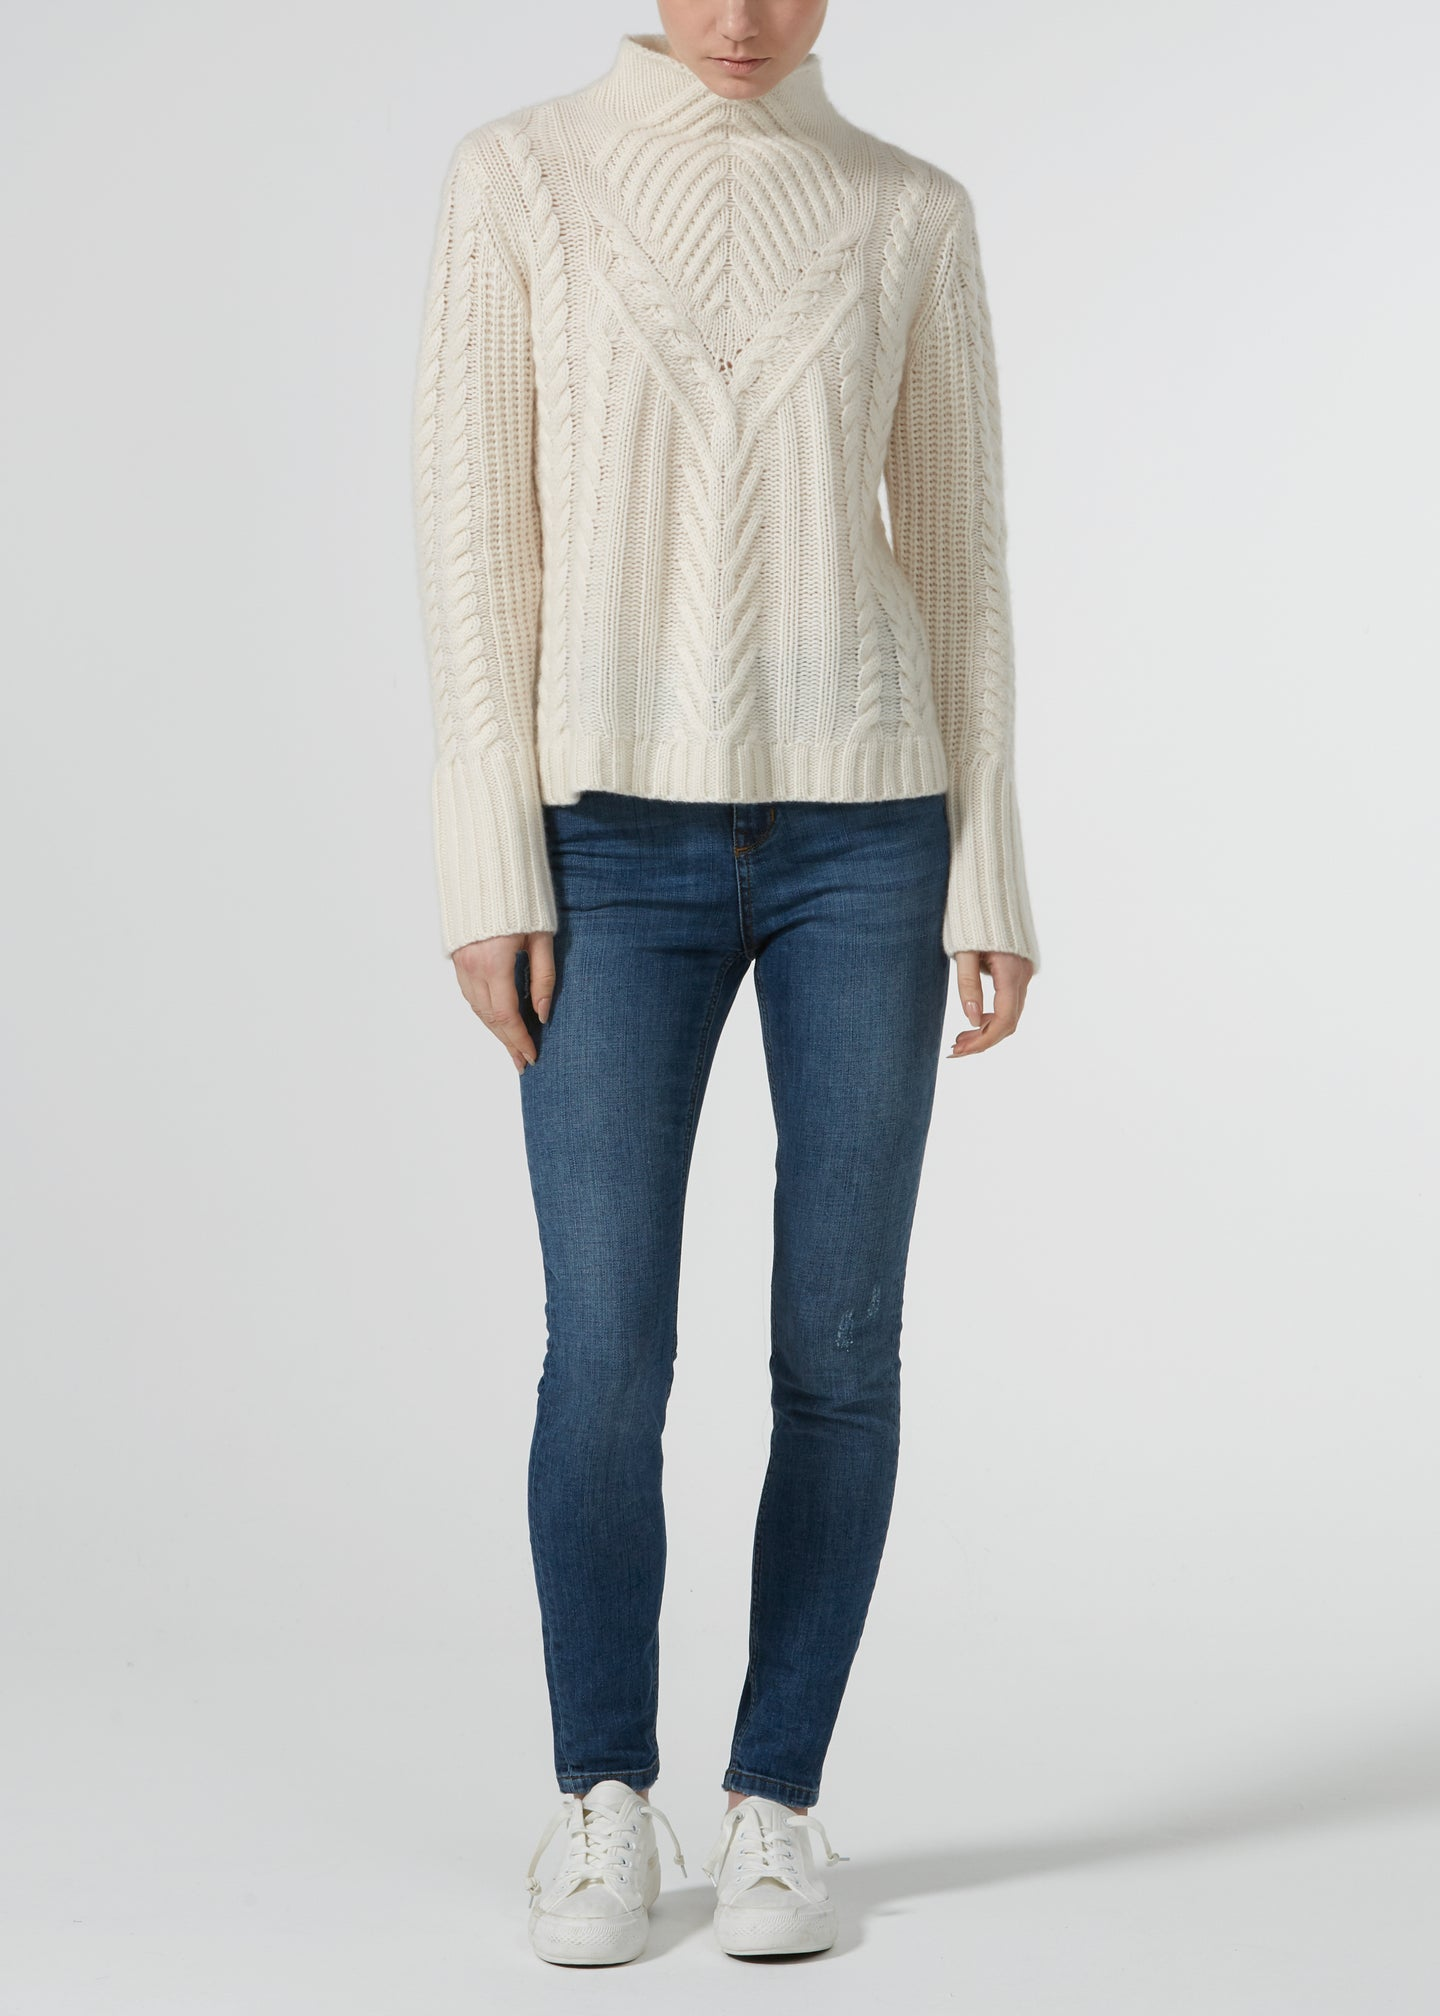 Cable Me Cashmere Knit - Milk